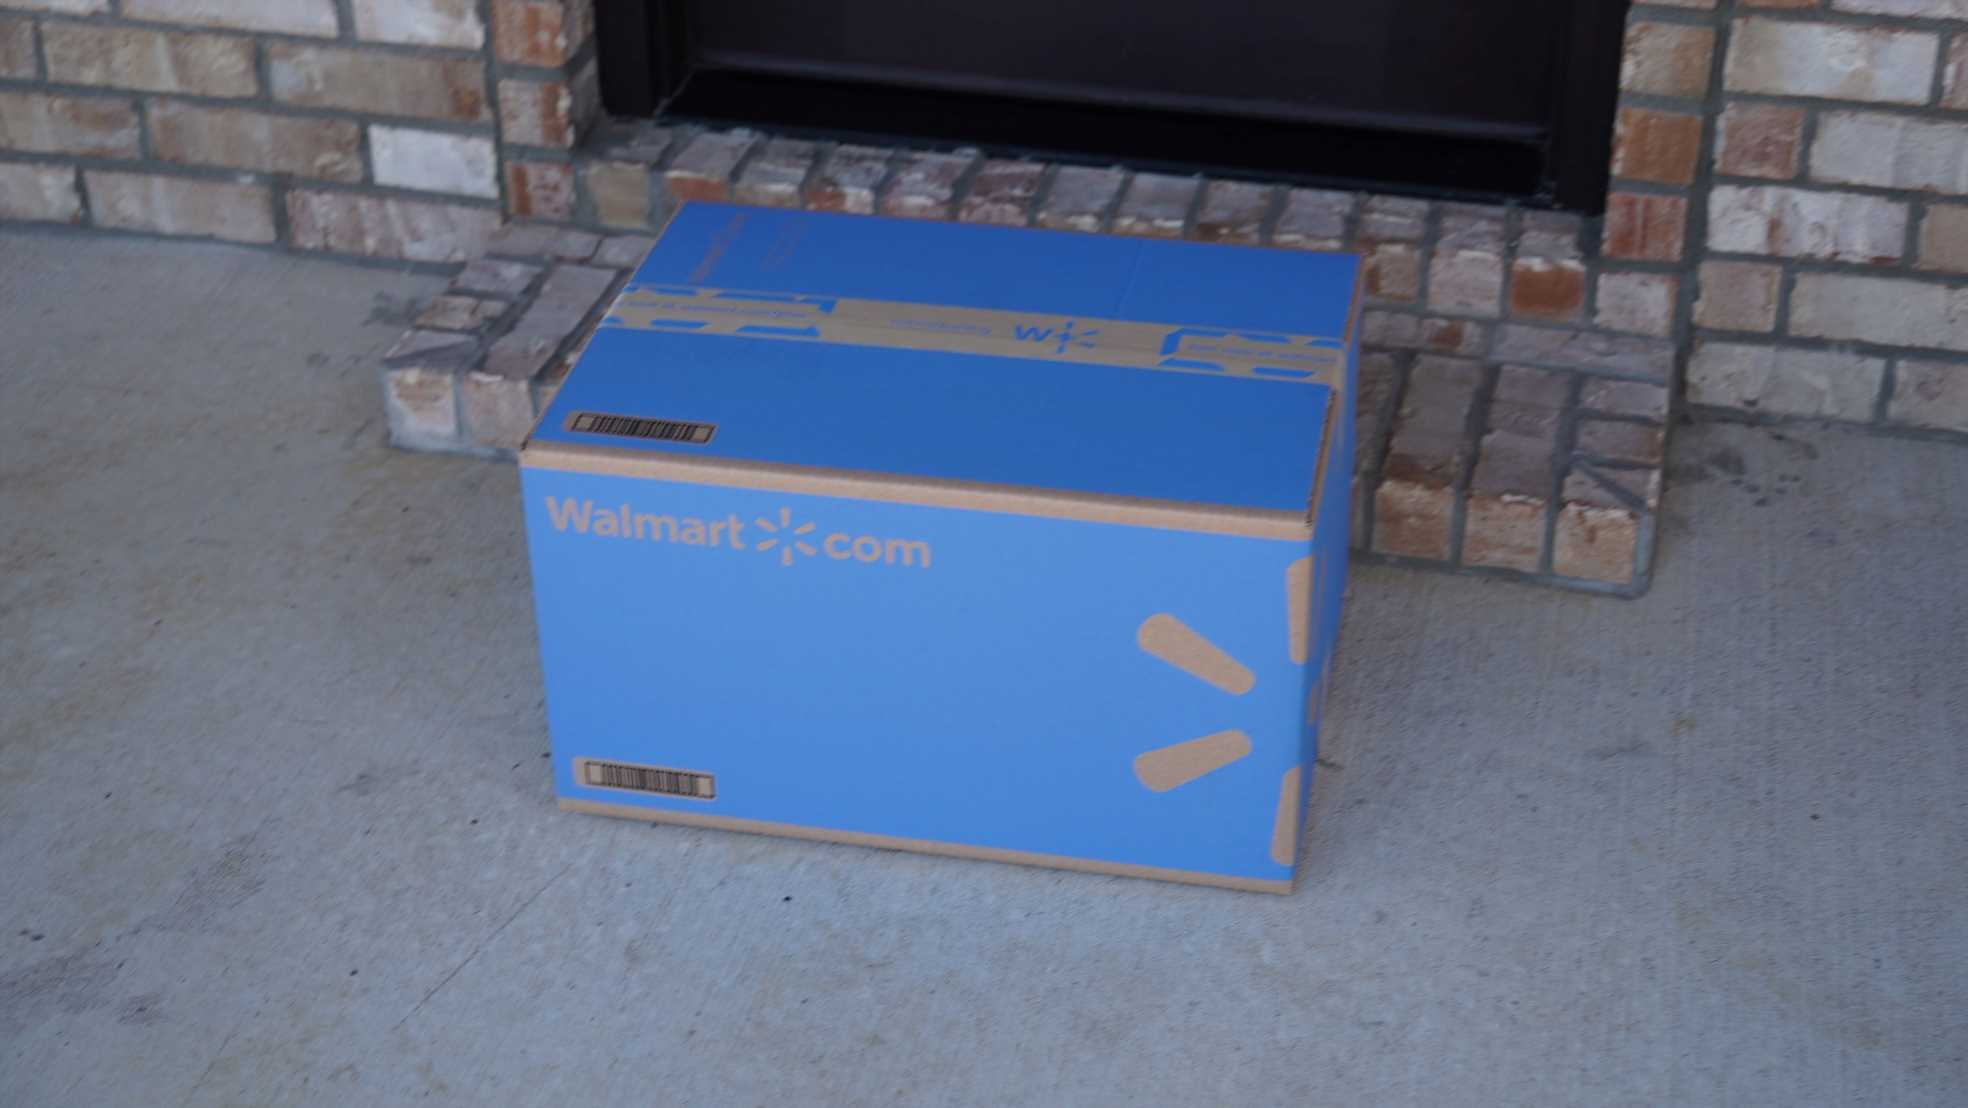 Walmart.com Is Dropping Its Minimum Shipping Spend For Walmart+ Members This Holiday Season